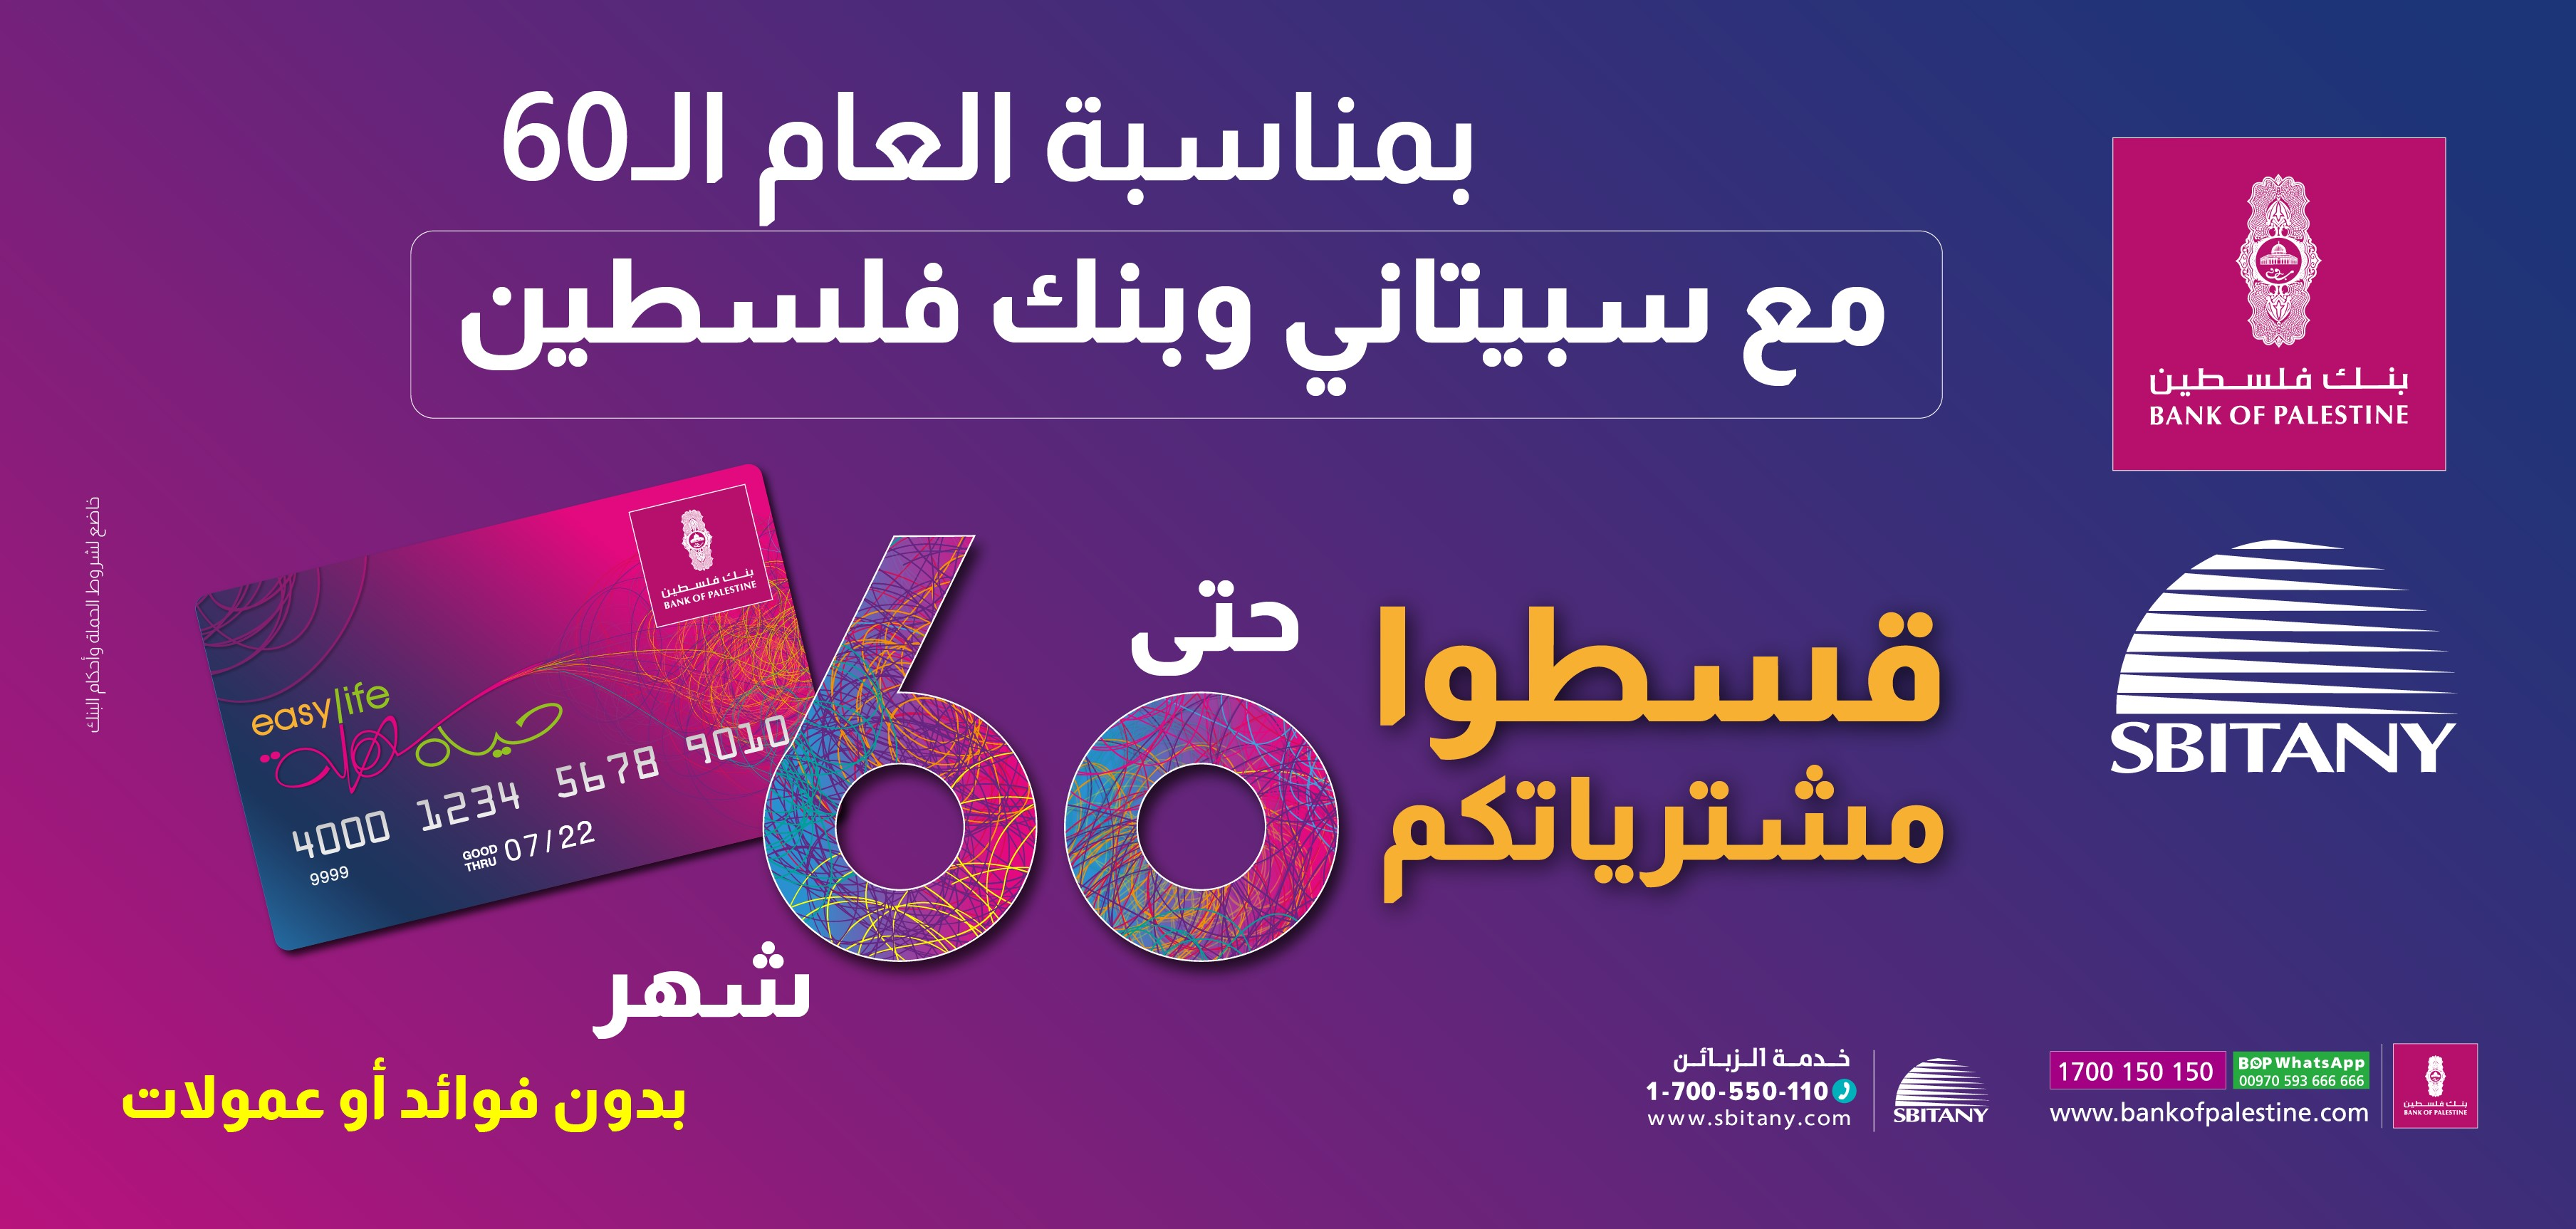 In celebration of the 60th anniversary since their establishment, Bank of Palestine and Akram Sbitany and Sons Company launch the 60-month installments campaign for Easy Life cardholders